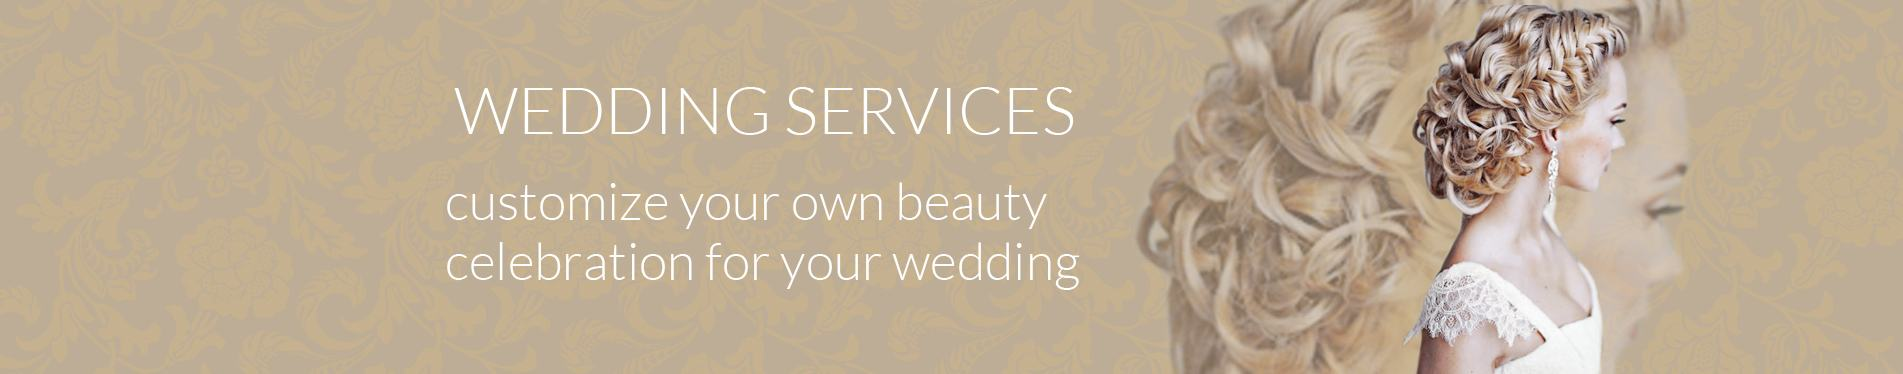 Wedding Bridal Hair Salon and Beauty Services in Miami